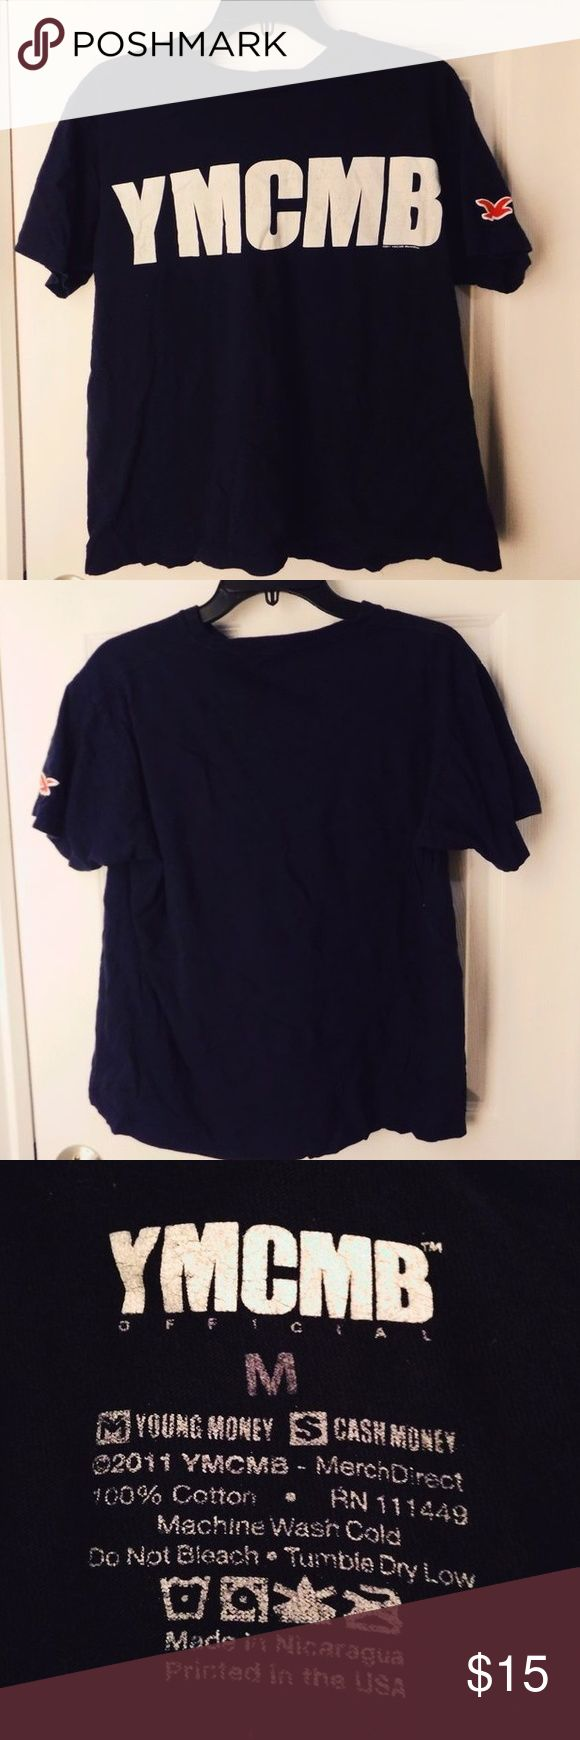 YMCMB T-shirt Officially licensed YMCMB navy tshirt- (young money cash money billionaires) Great condition. I always liked the red bird on the sleeve. Size medium in women's (US) YMCMB OFFICIAL Tops Tees - Short Sleeve